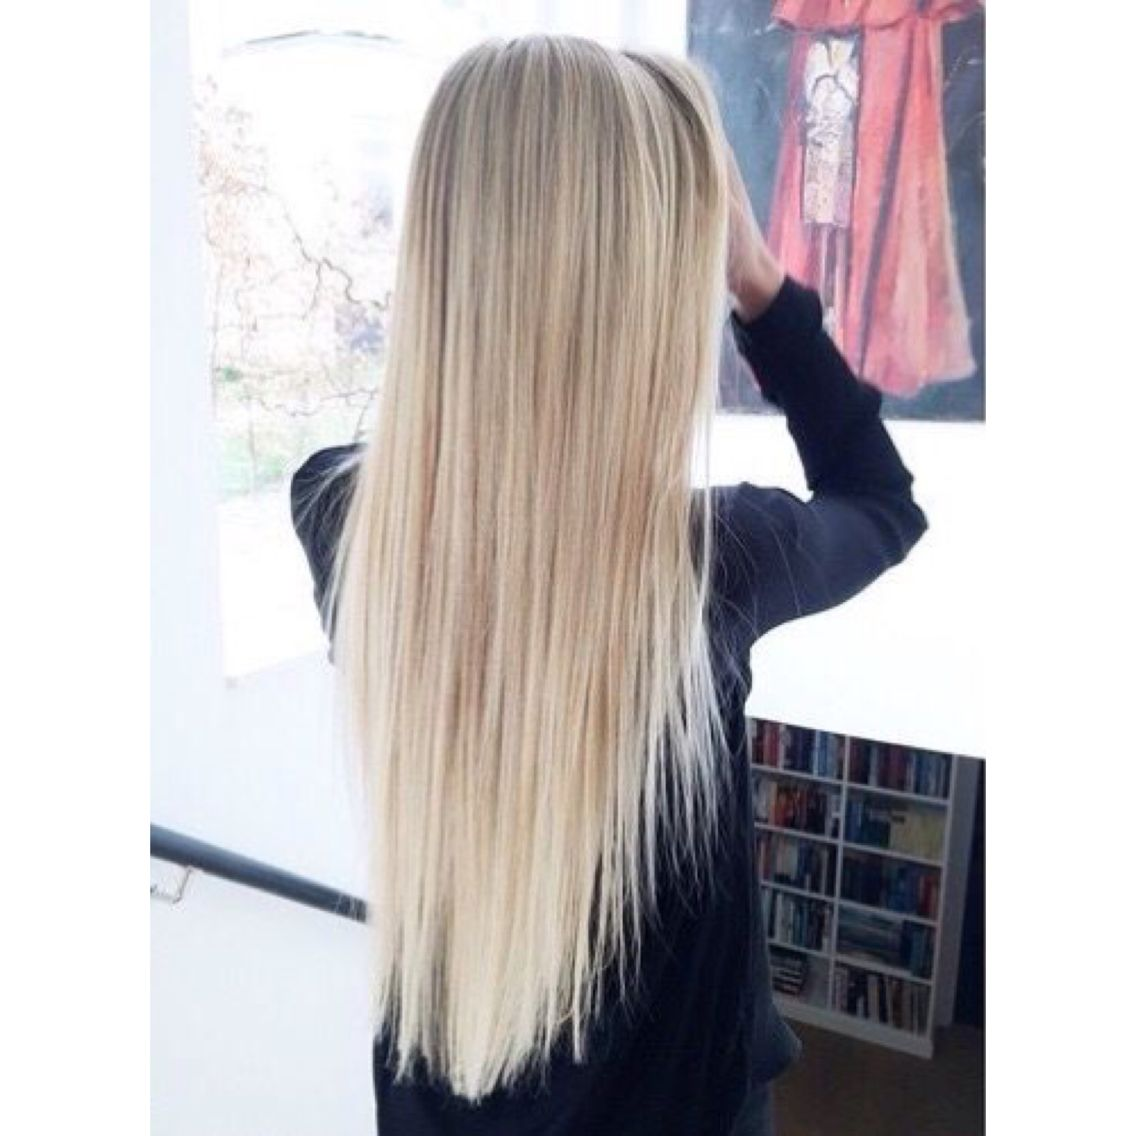 Pin by darbydj haman on hair pinterest blondes hair goals and